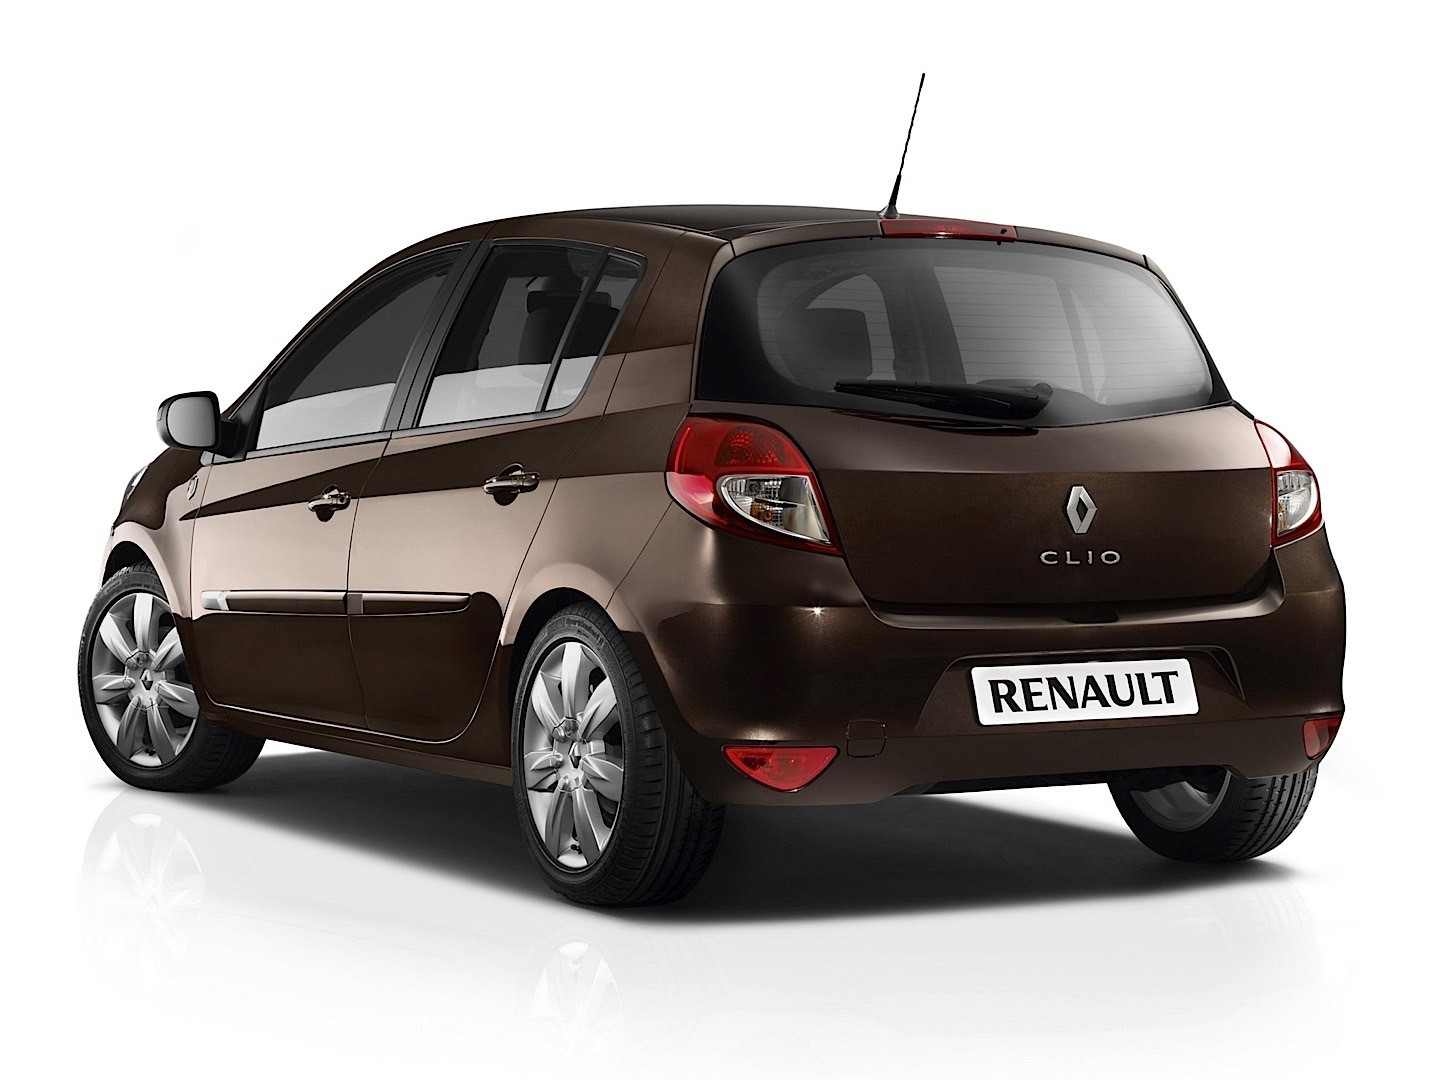 renault clio 5 doors specs 2009 2010 2011 2012 autoevolution. Black Bedroom Furniture Sets. Home Design Ideas